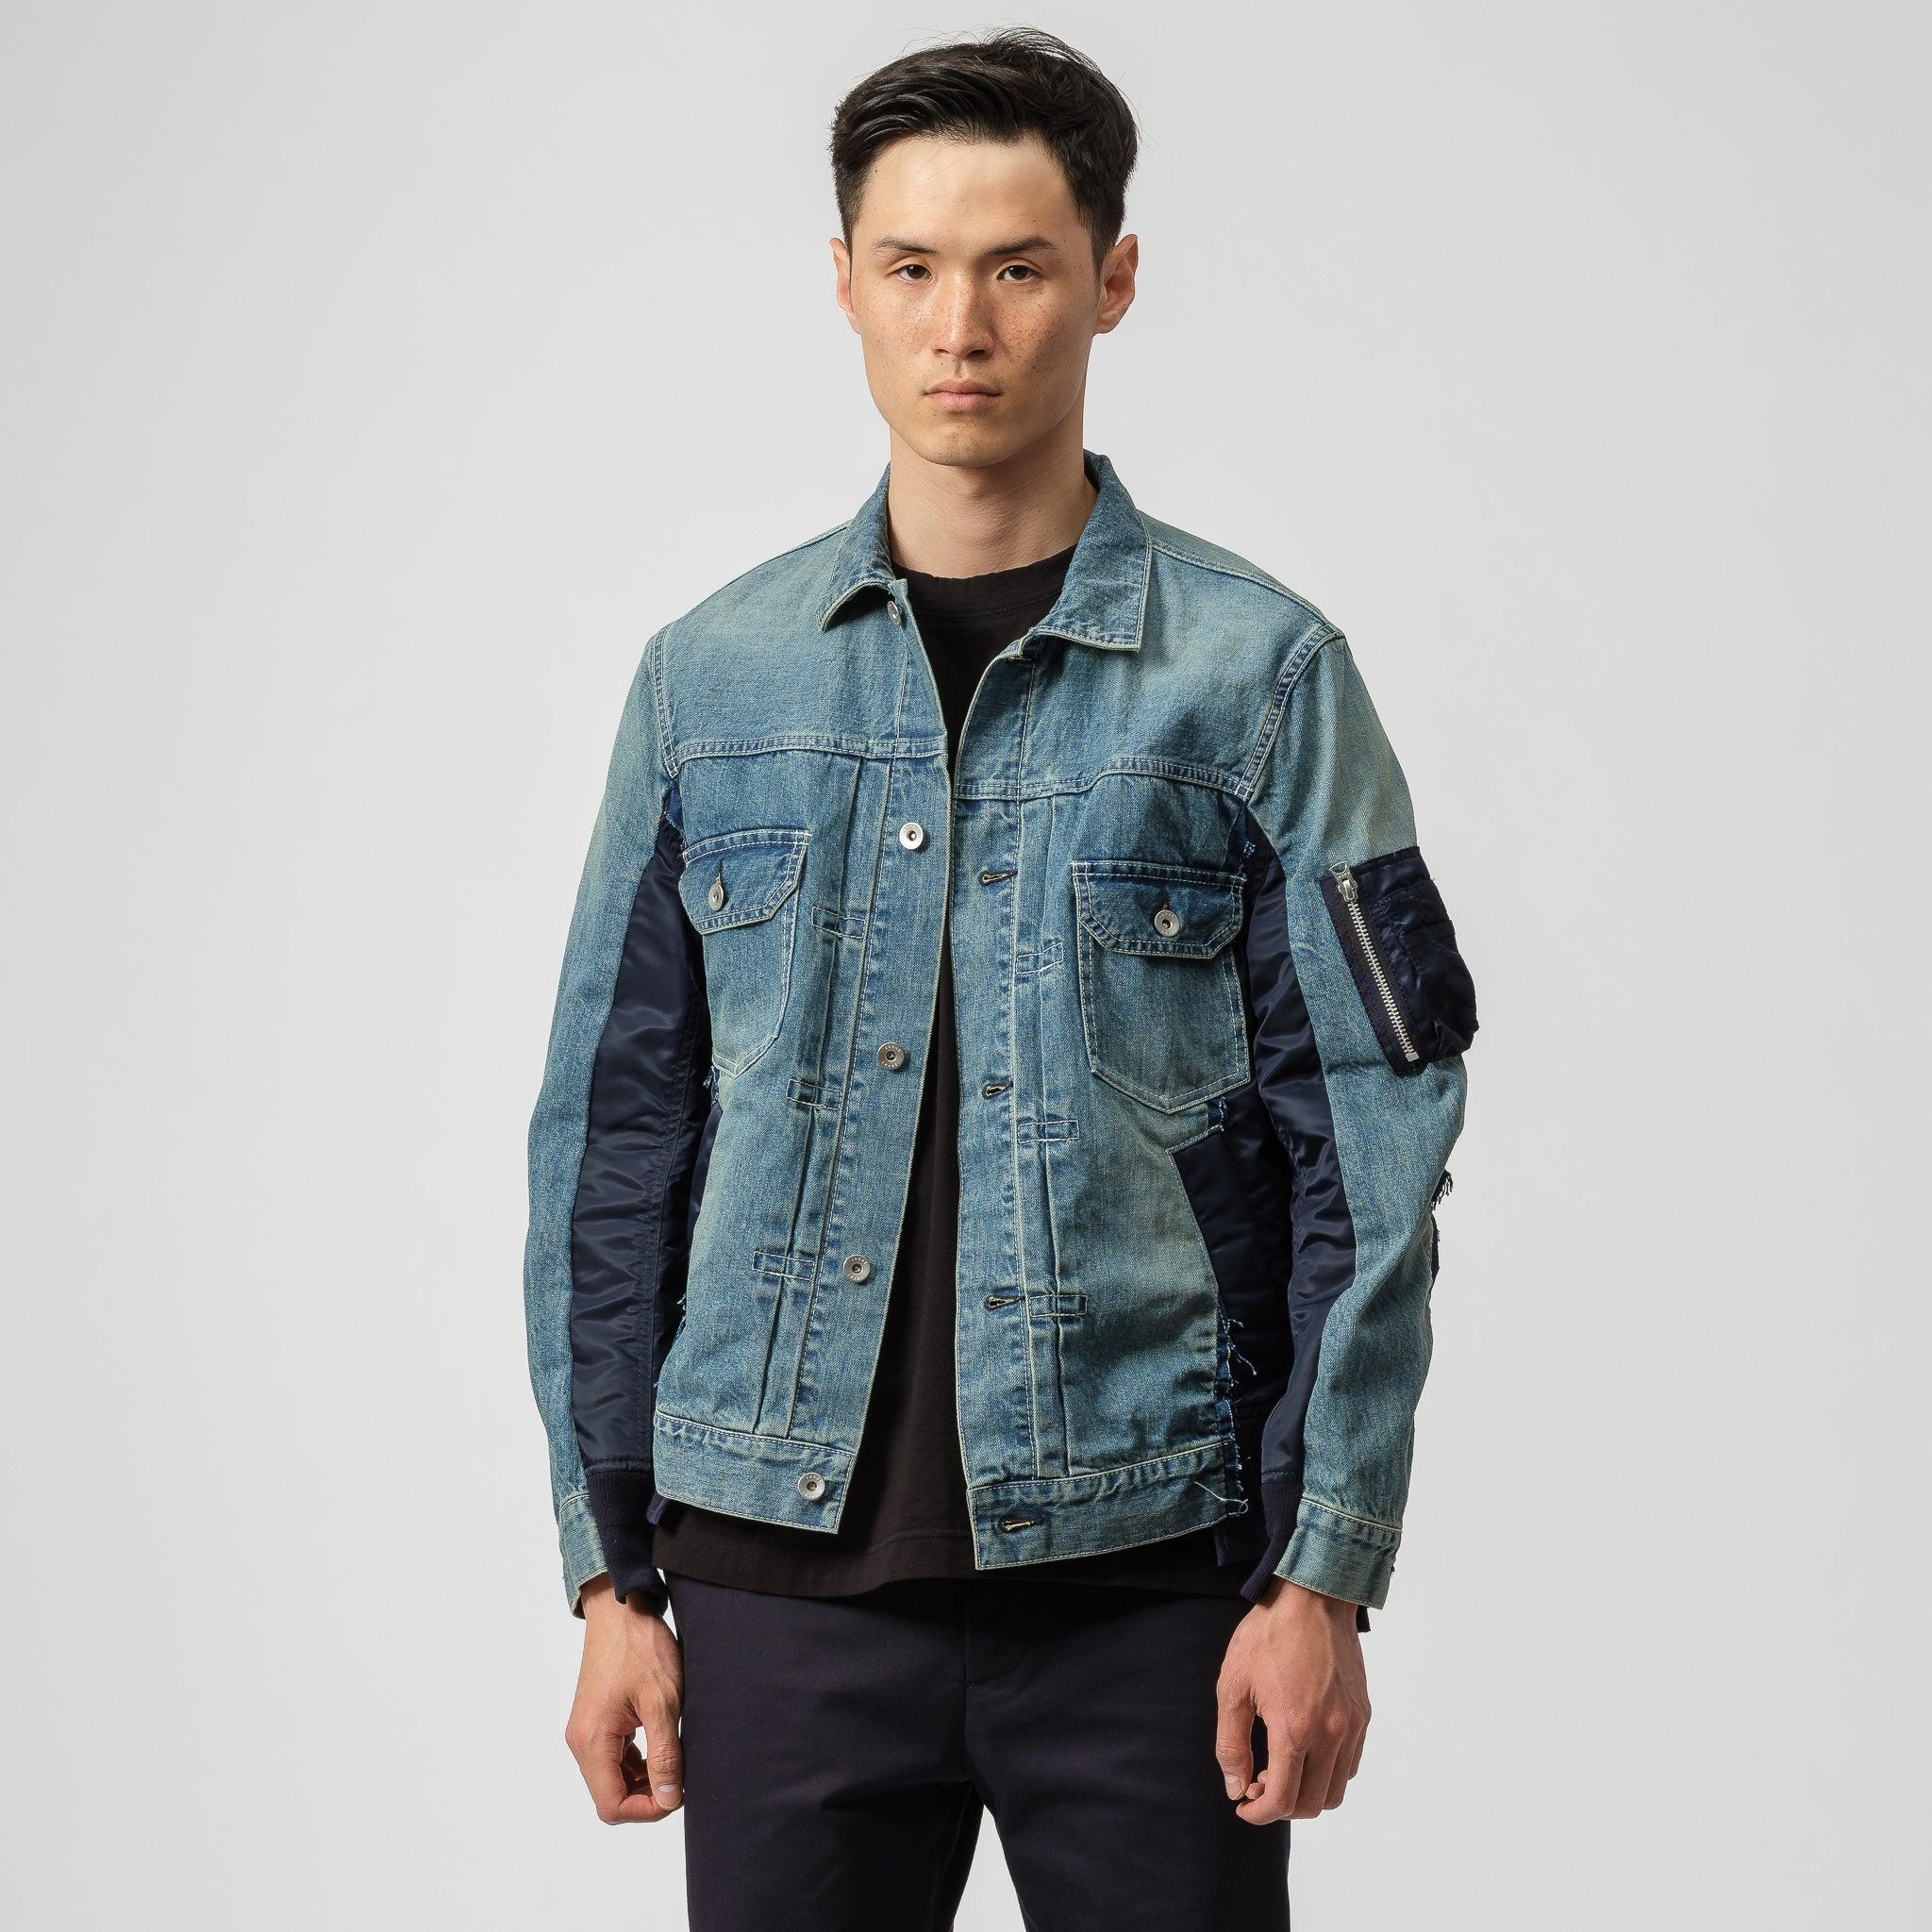 Denim Jacket in Light Blue/Navy